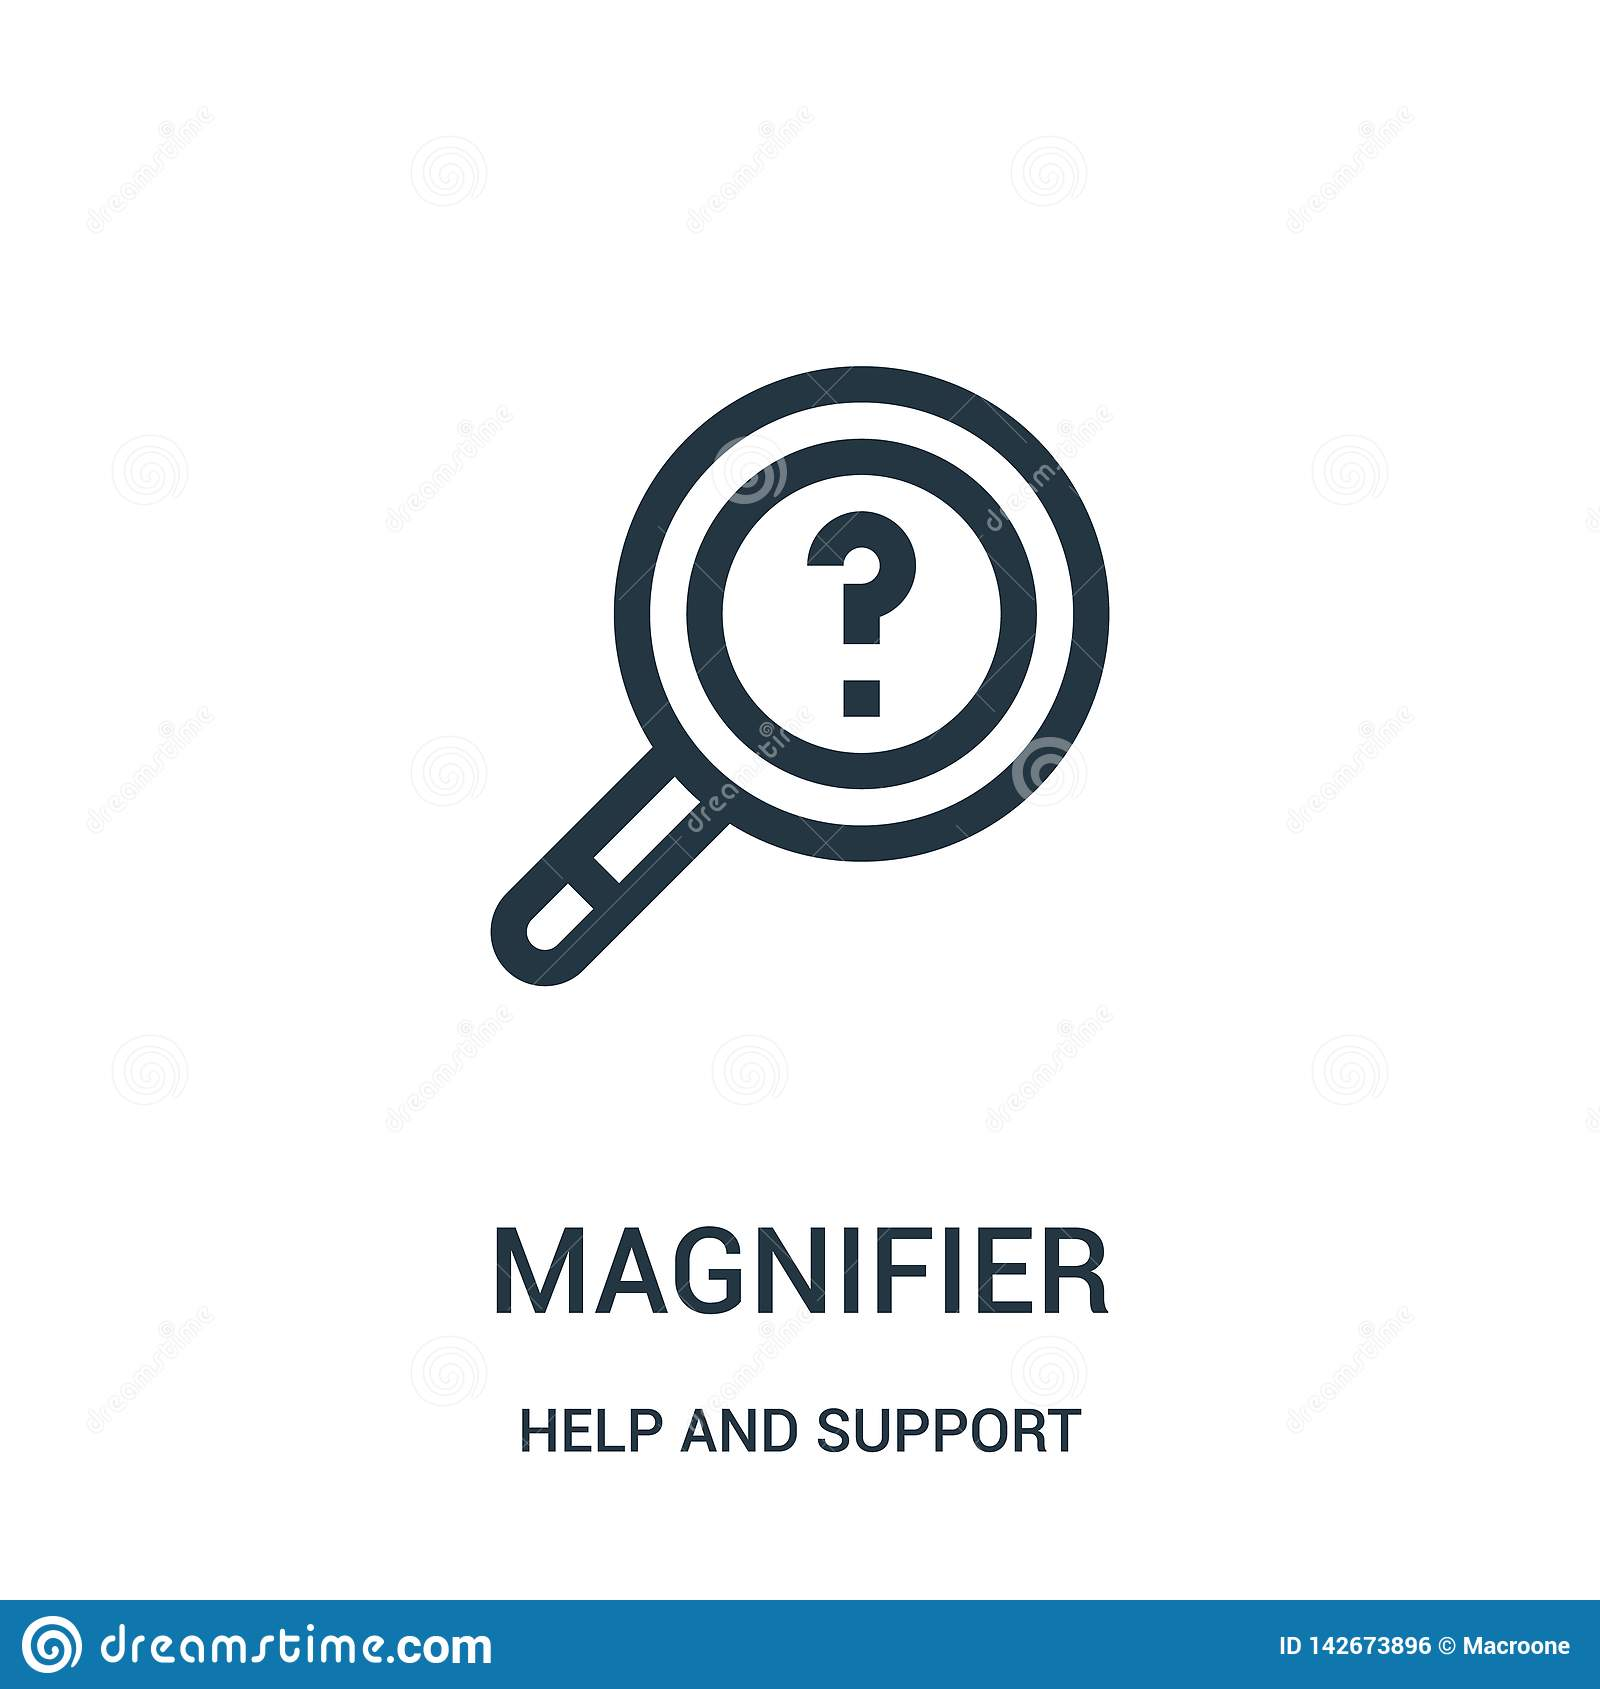 magnifier icon vector from help and support collection. Thin line magnifier outline icon vector illustration. Linear symbol for